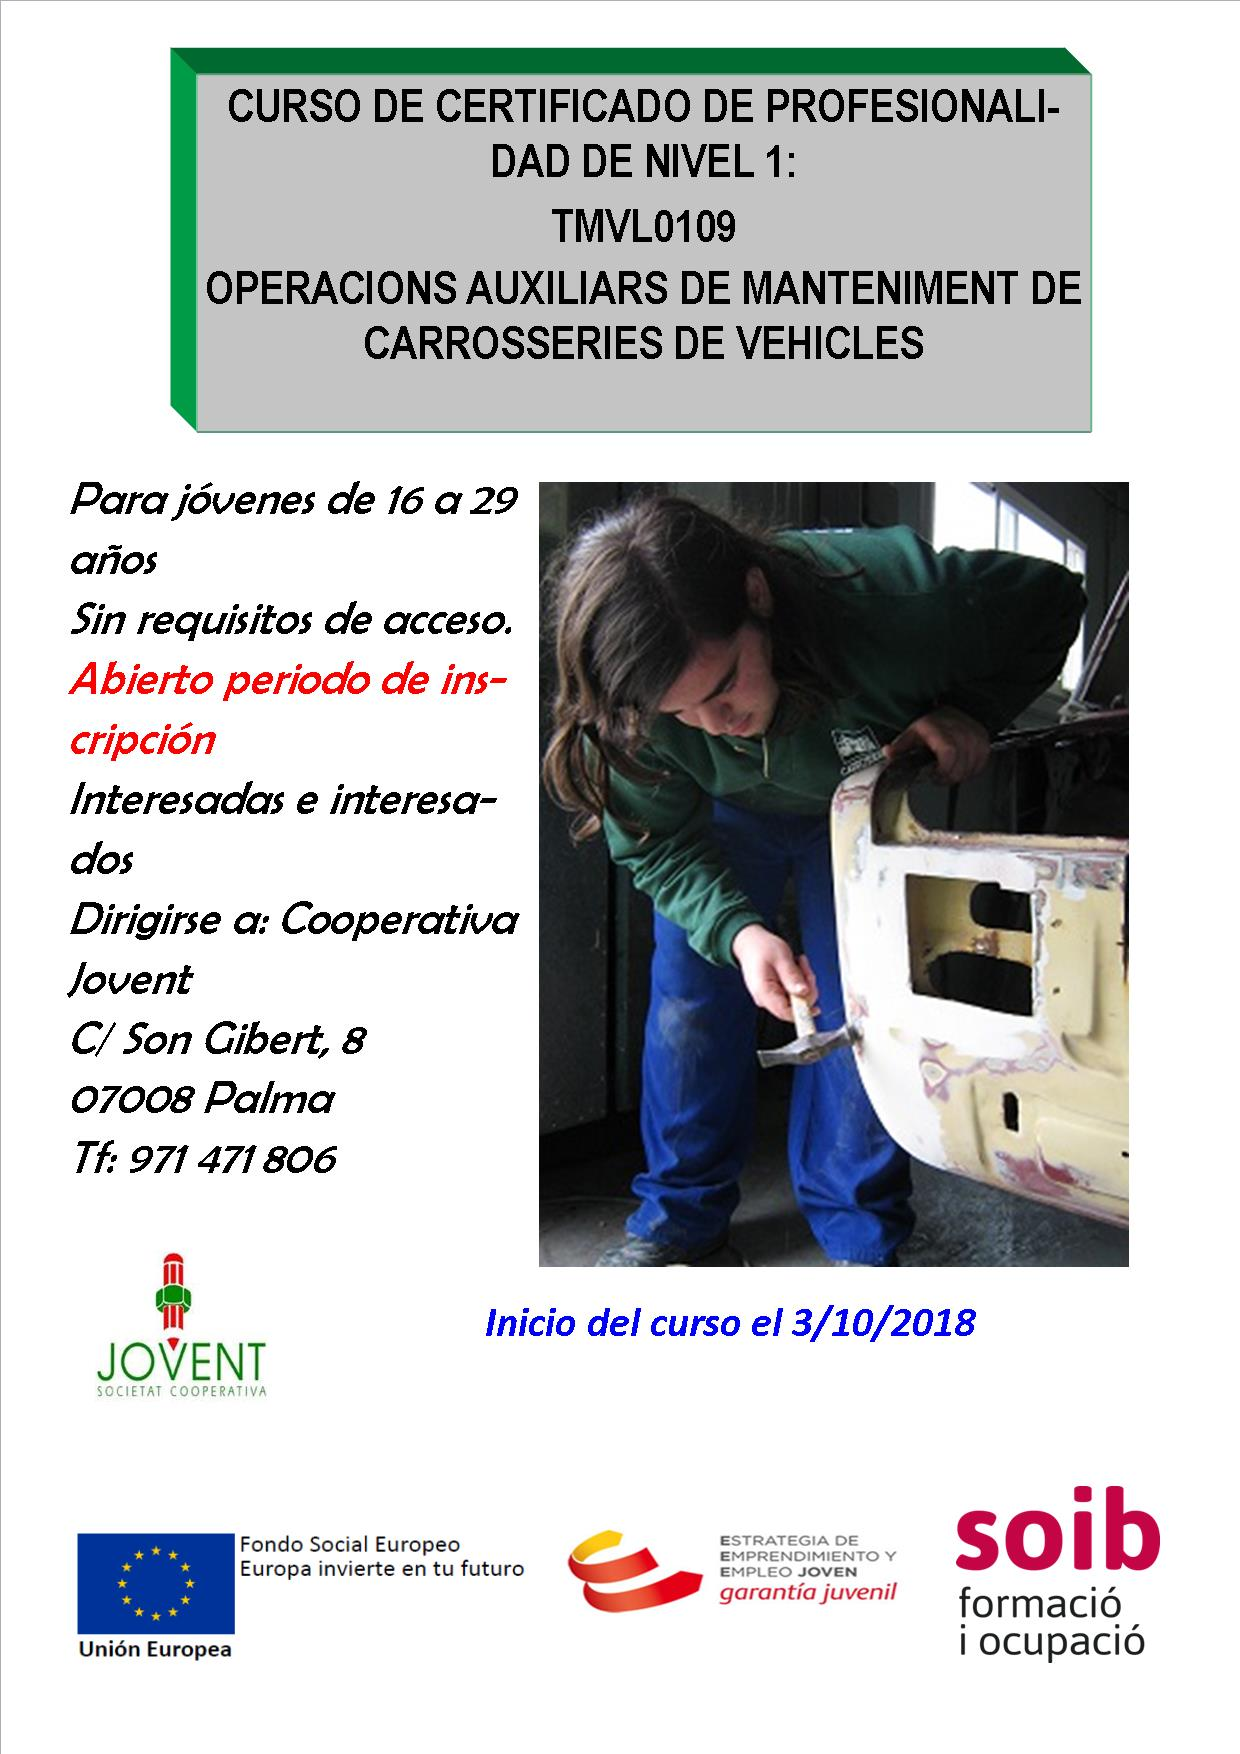 Operacions auxiliars de manteniment de carrosseries de vehicles